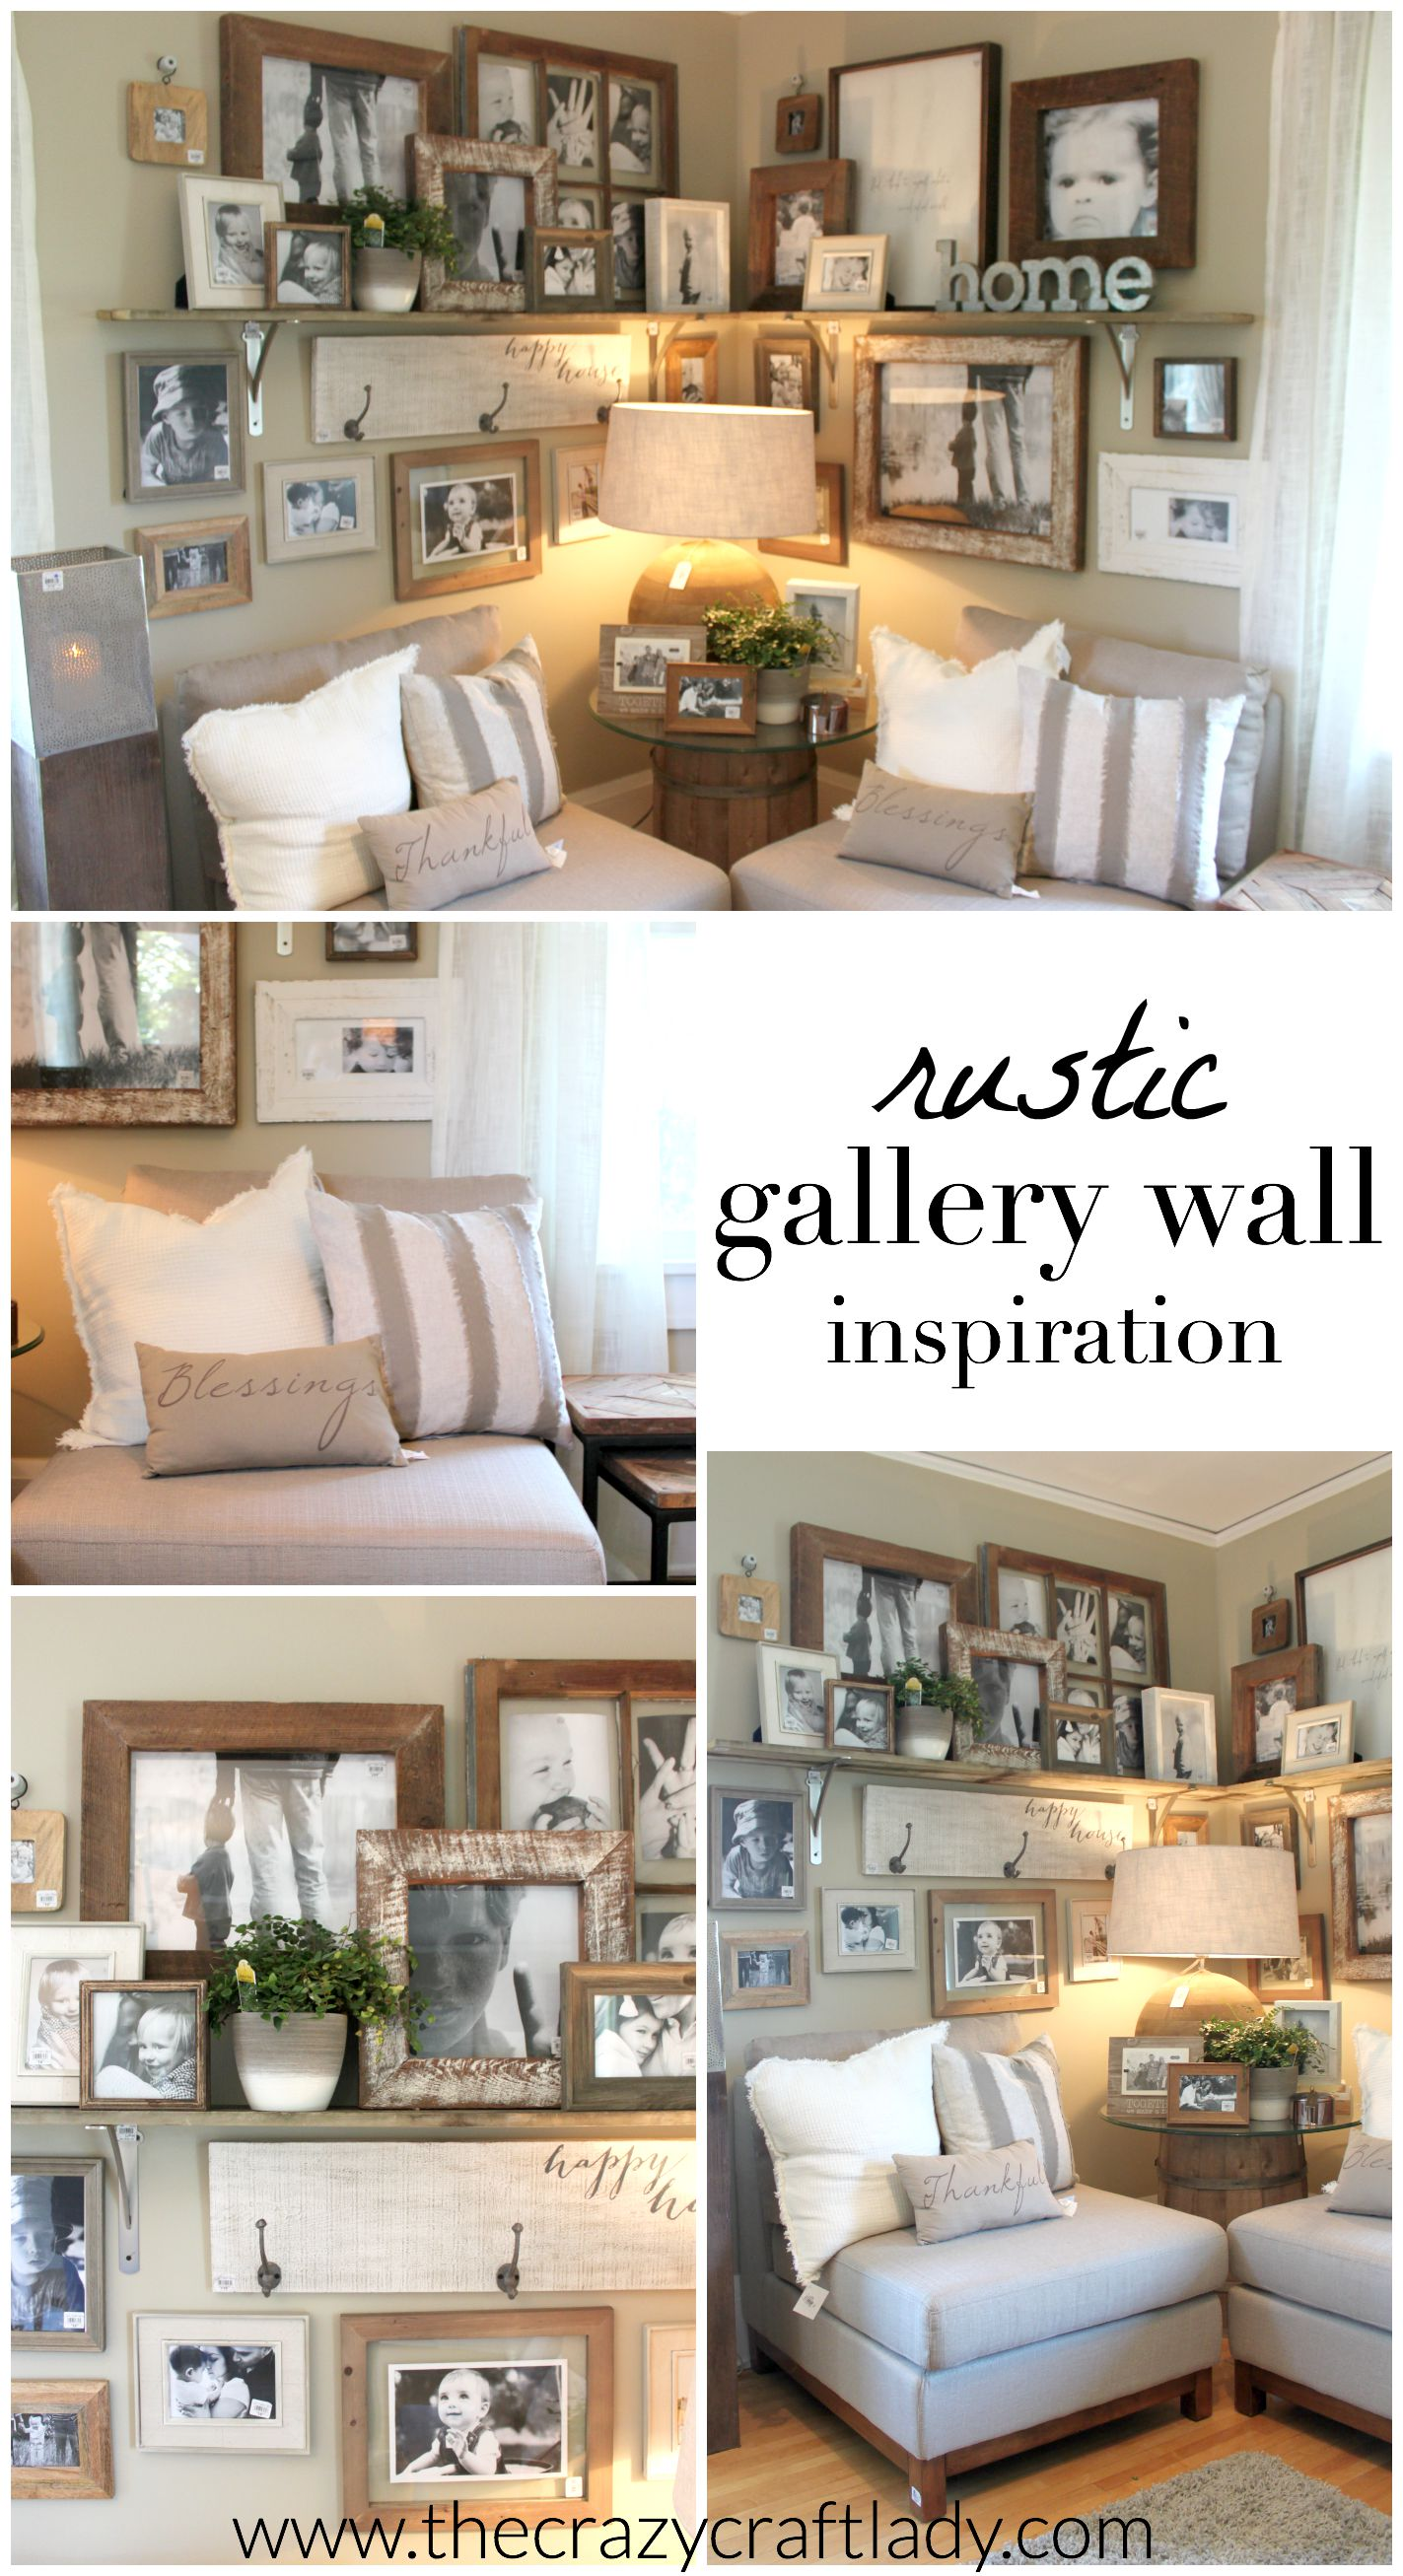 Fall 2015 Ideas House - The Crazy Craft Lady